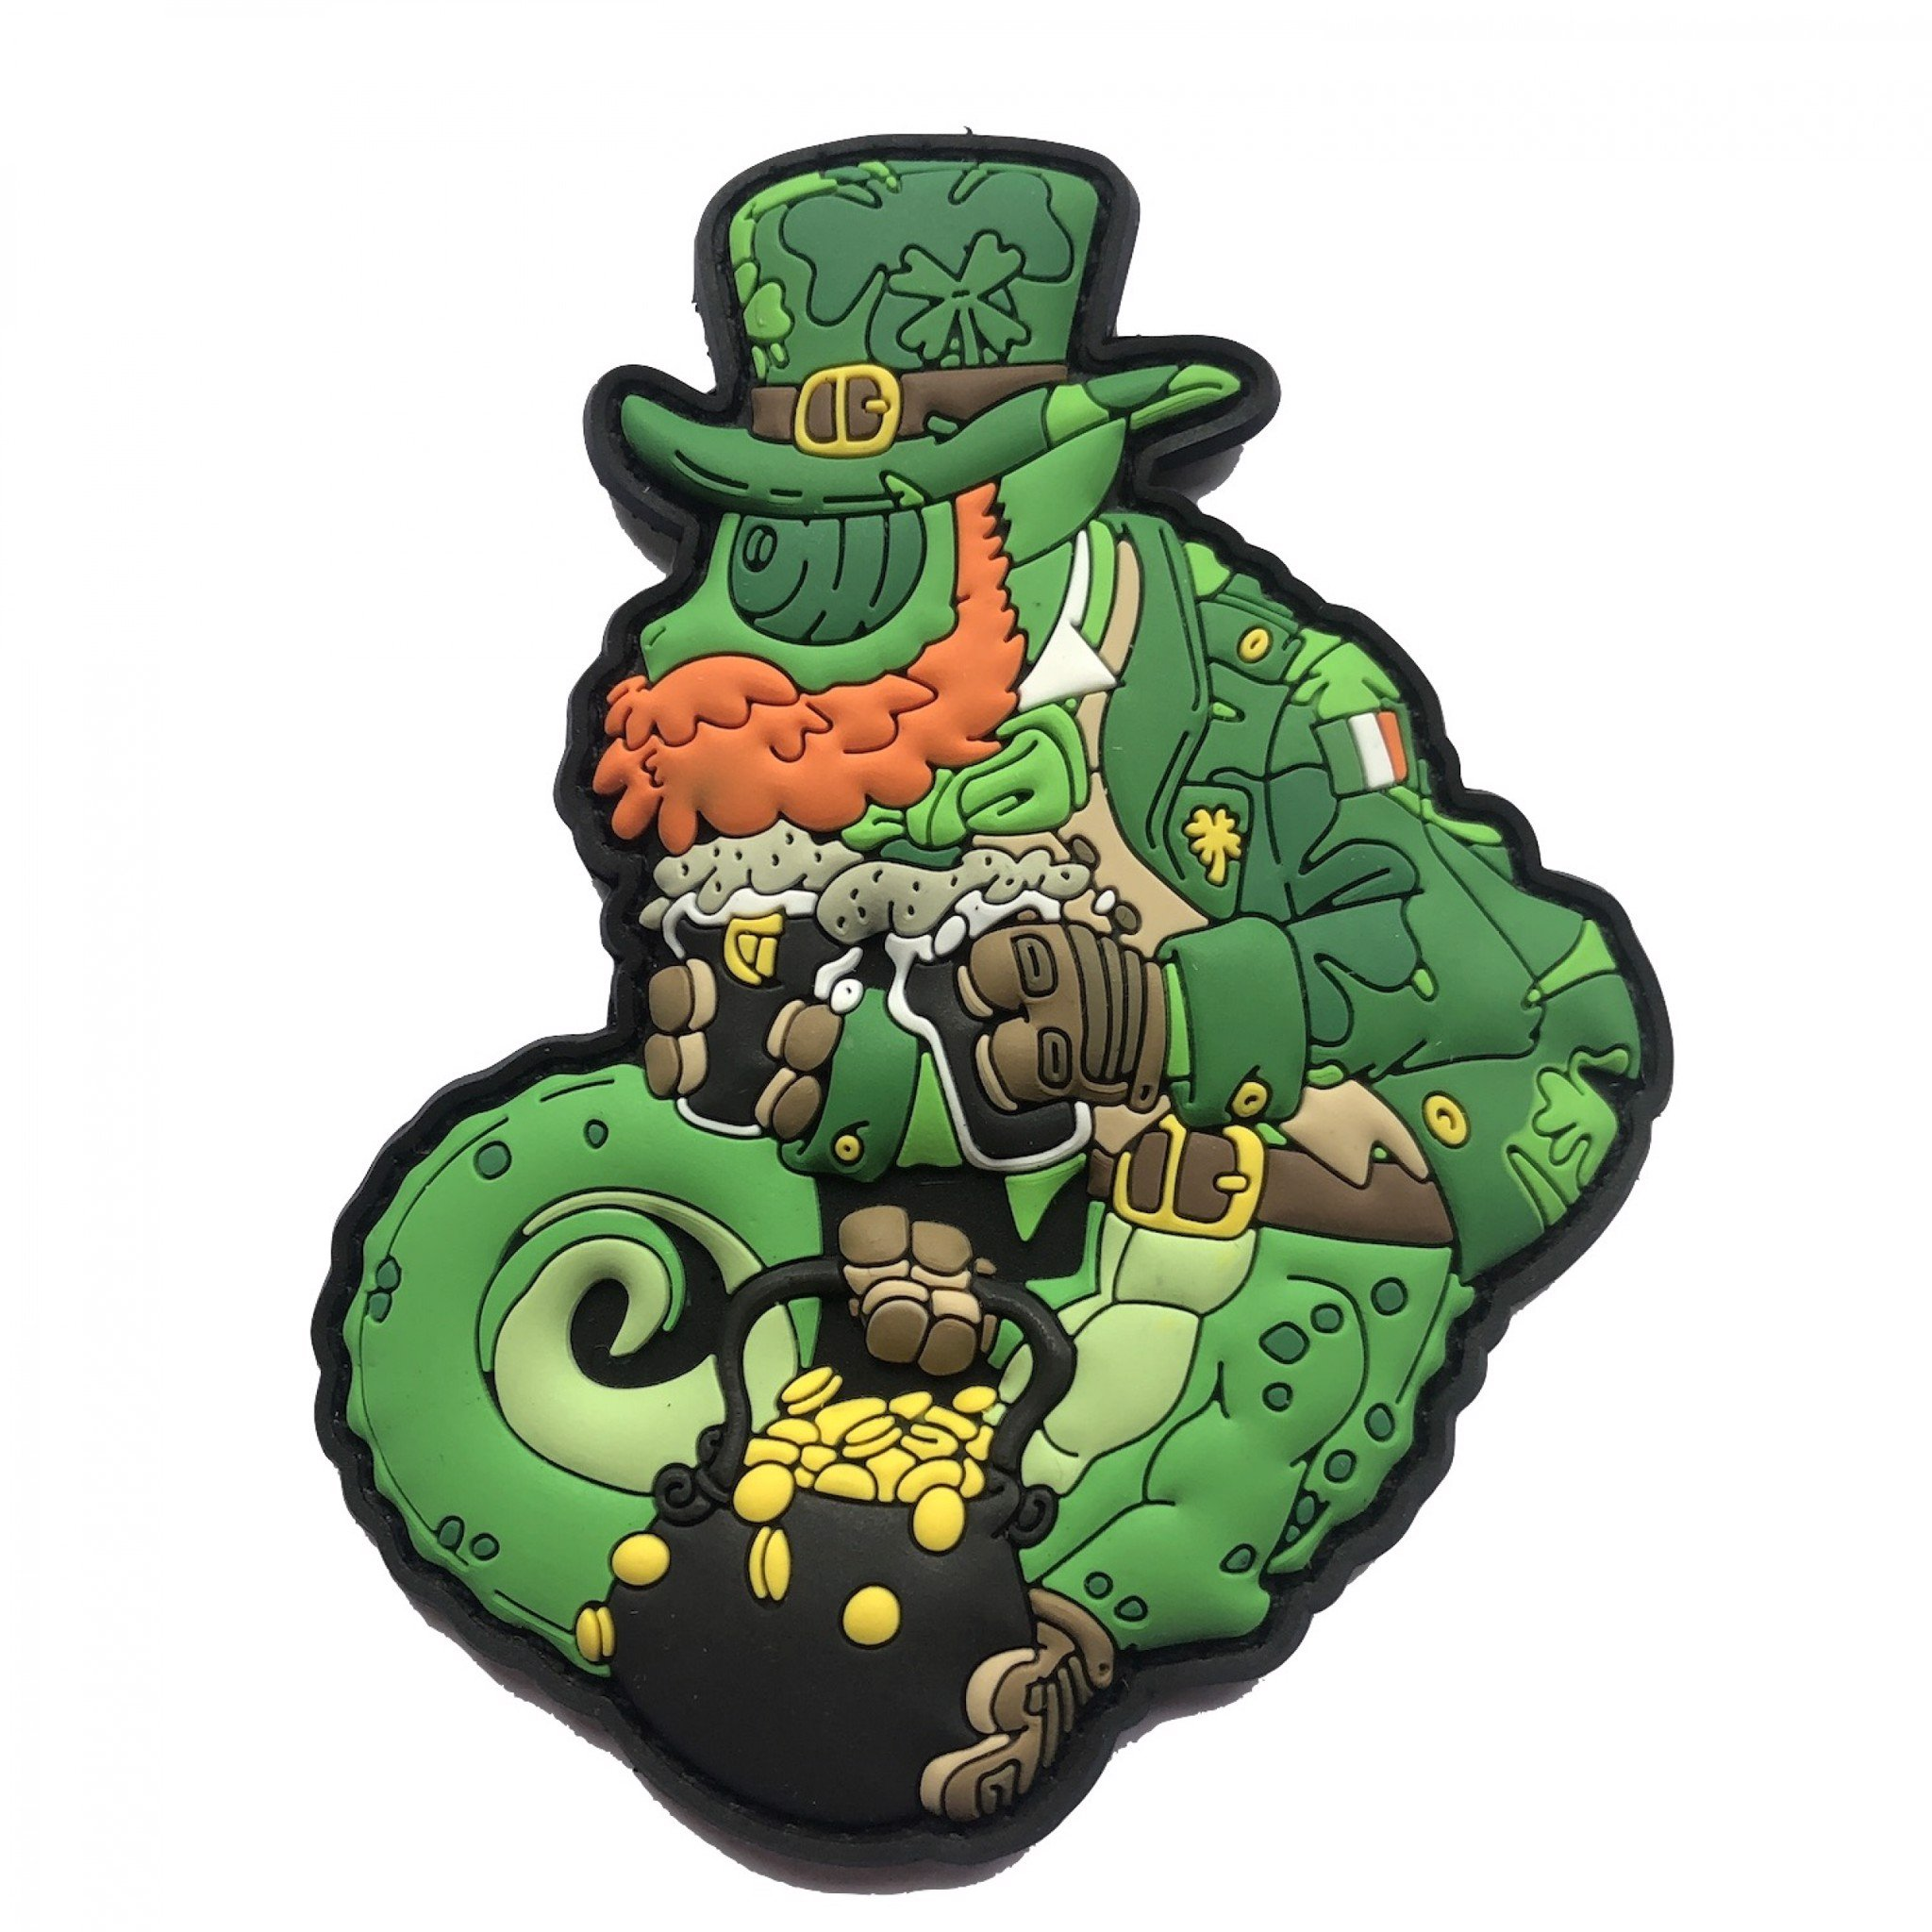 TACTICAL CHAMELEON ST. PATRICK'S OPERATOR PATCH